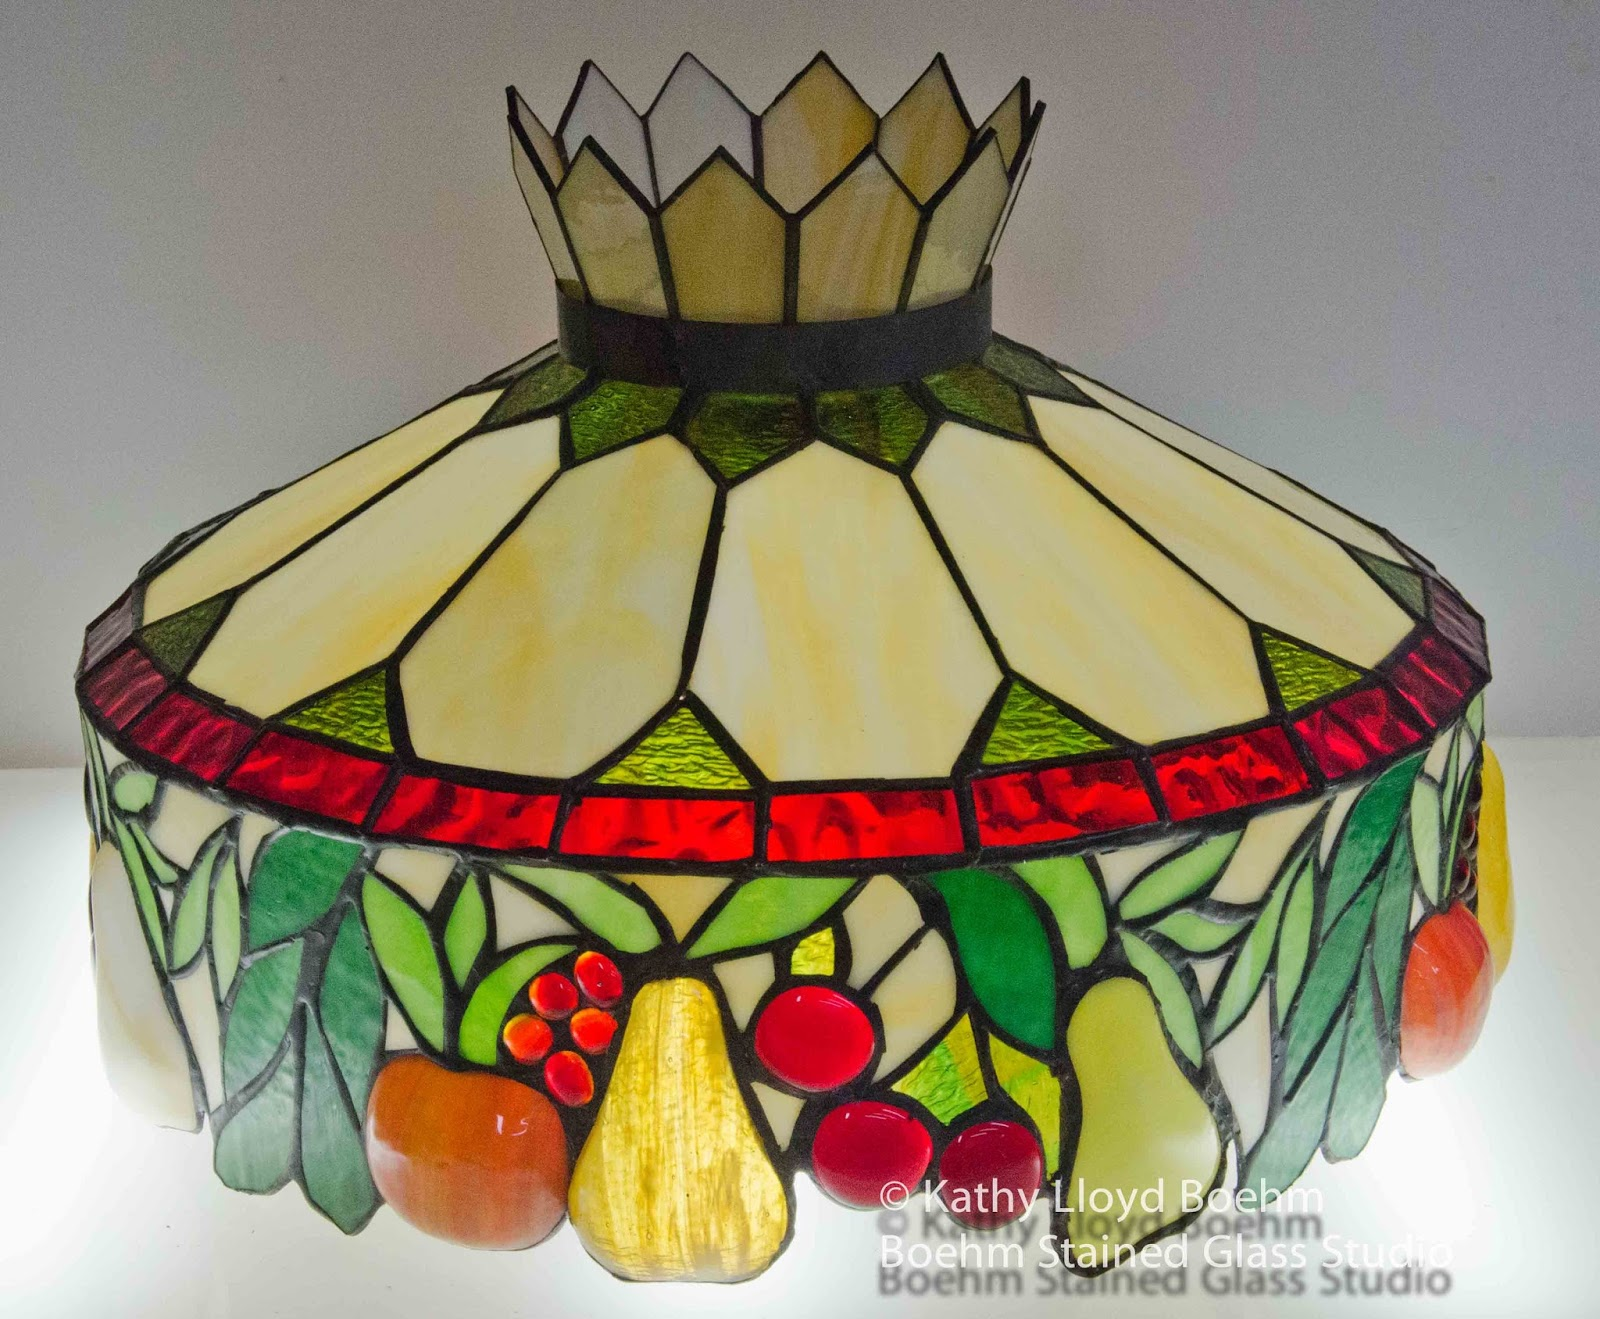 Boehm Stained Glass Blog: Stained Glass Fruit Lamp Repair #9